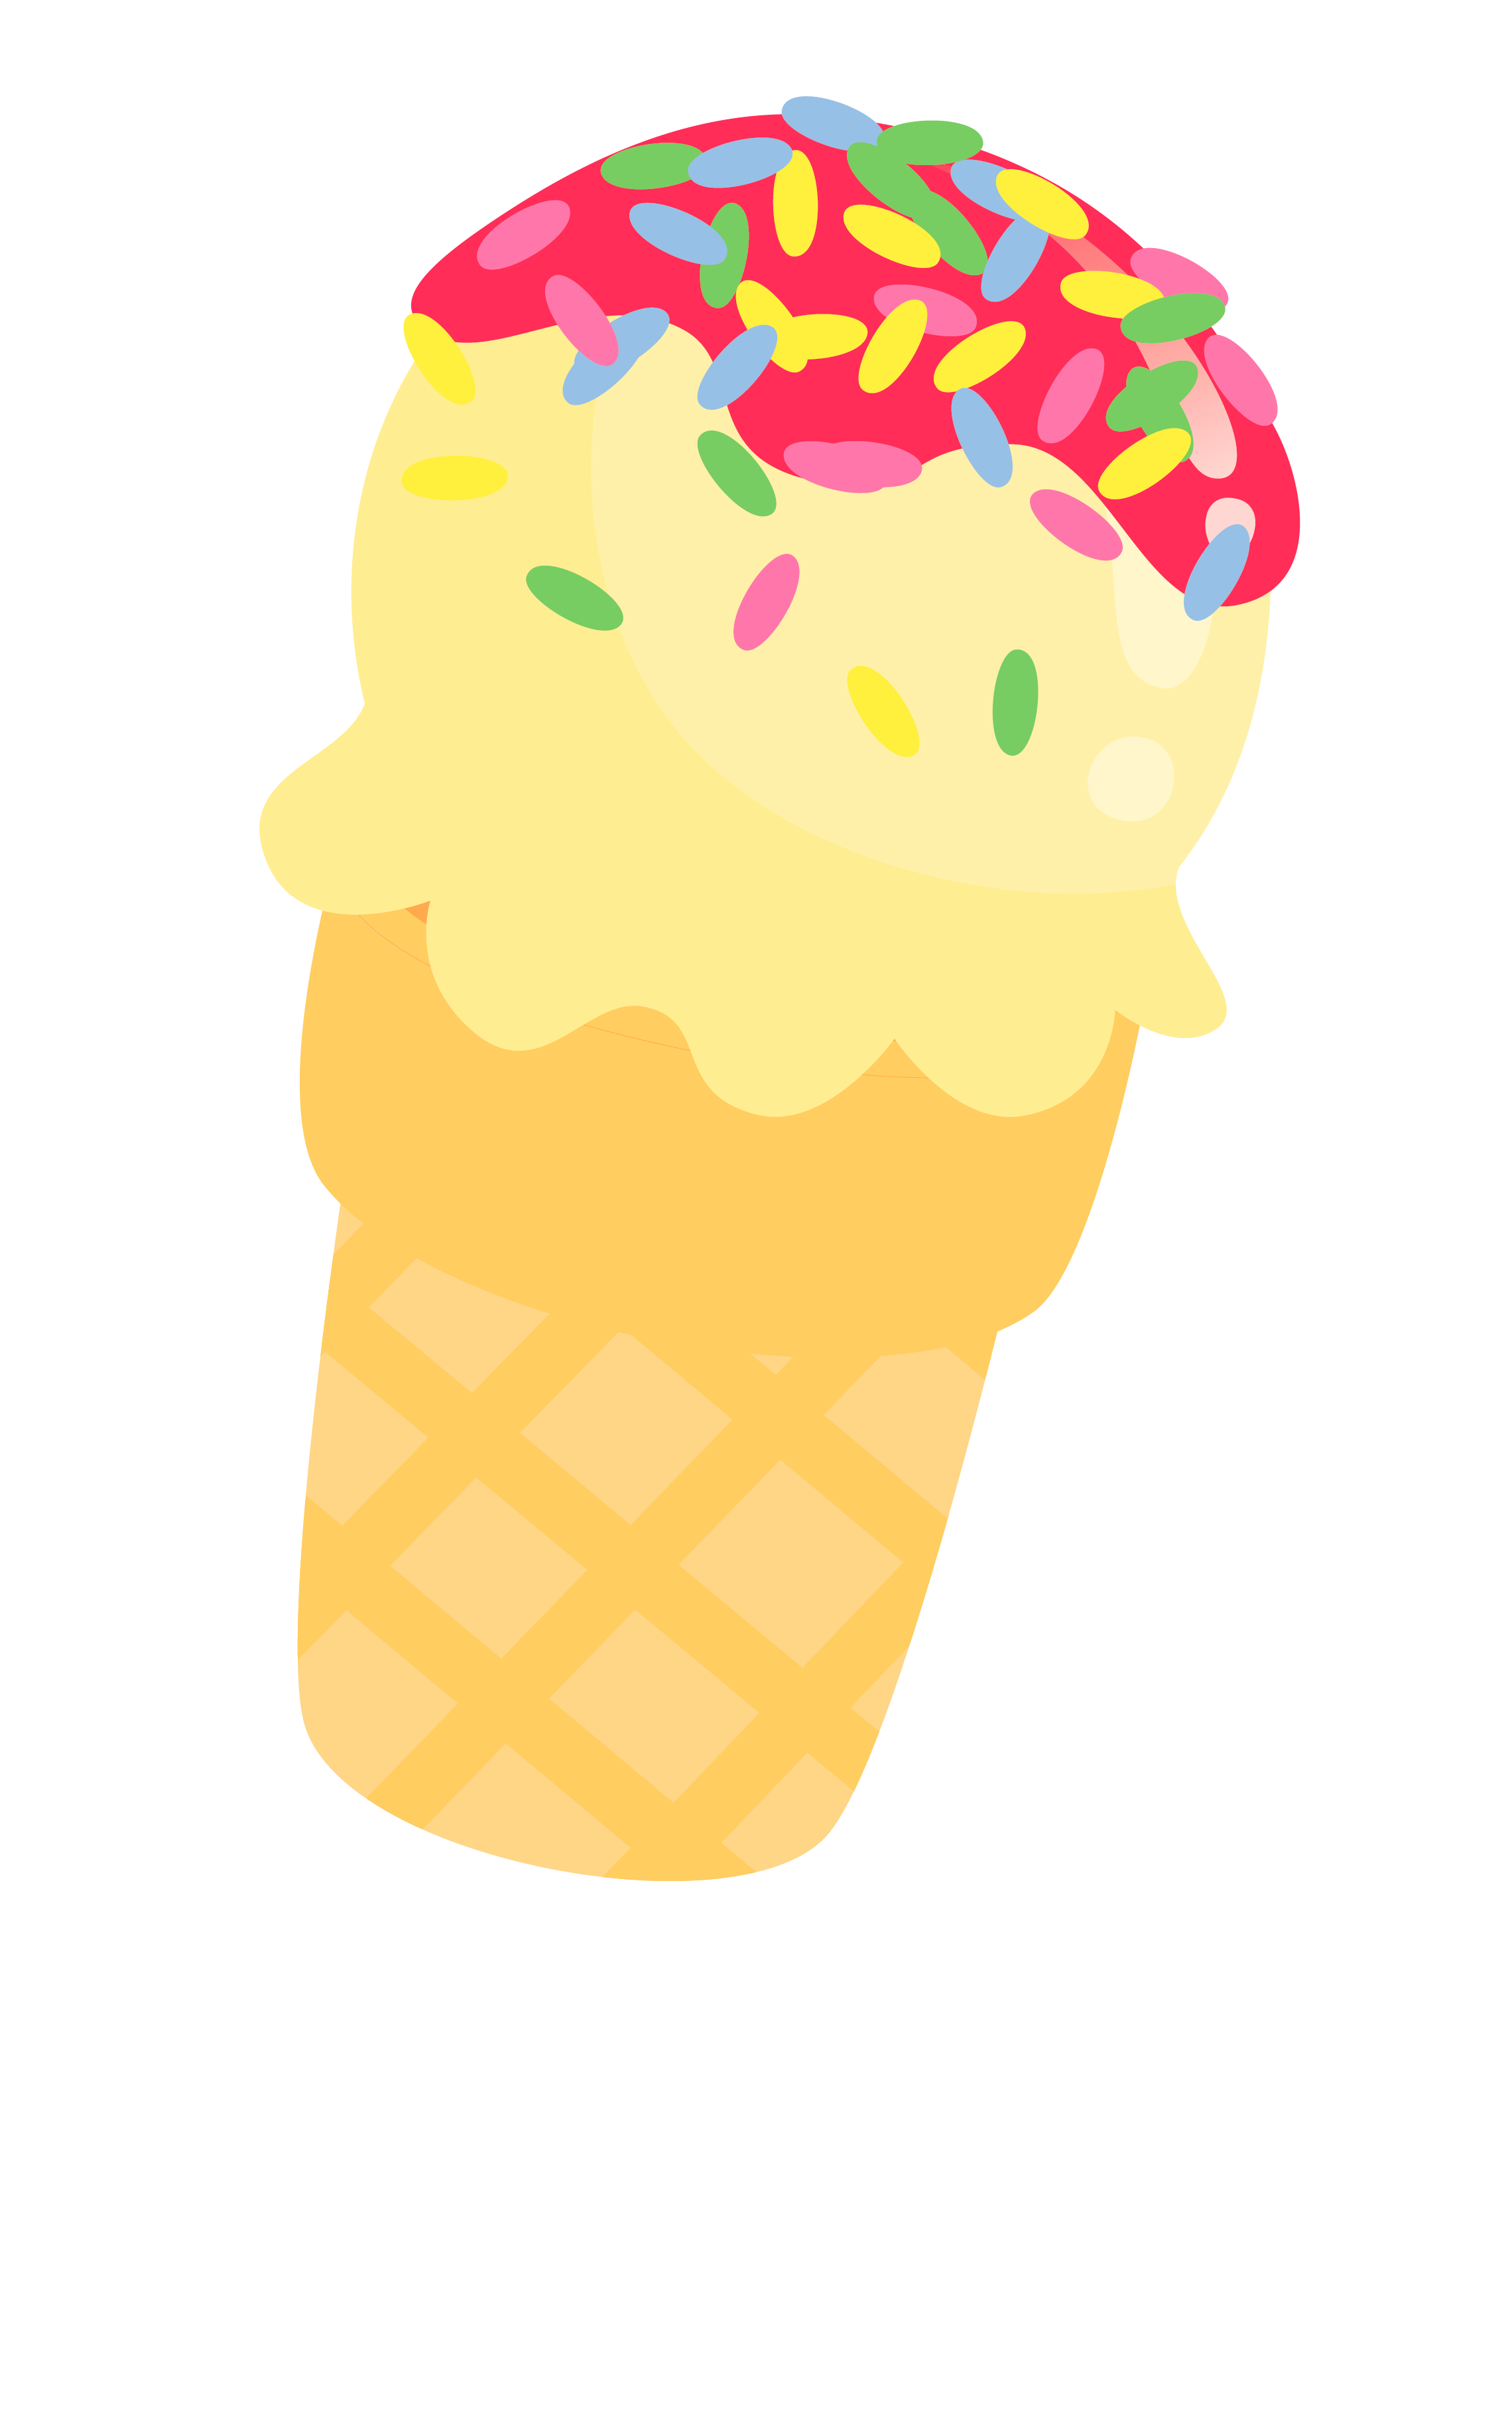 Apple pie with ice cream clipart image freeuse Ice Cream Clipart, ice cream cone clip art, cute illustration png ... image freeuse